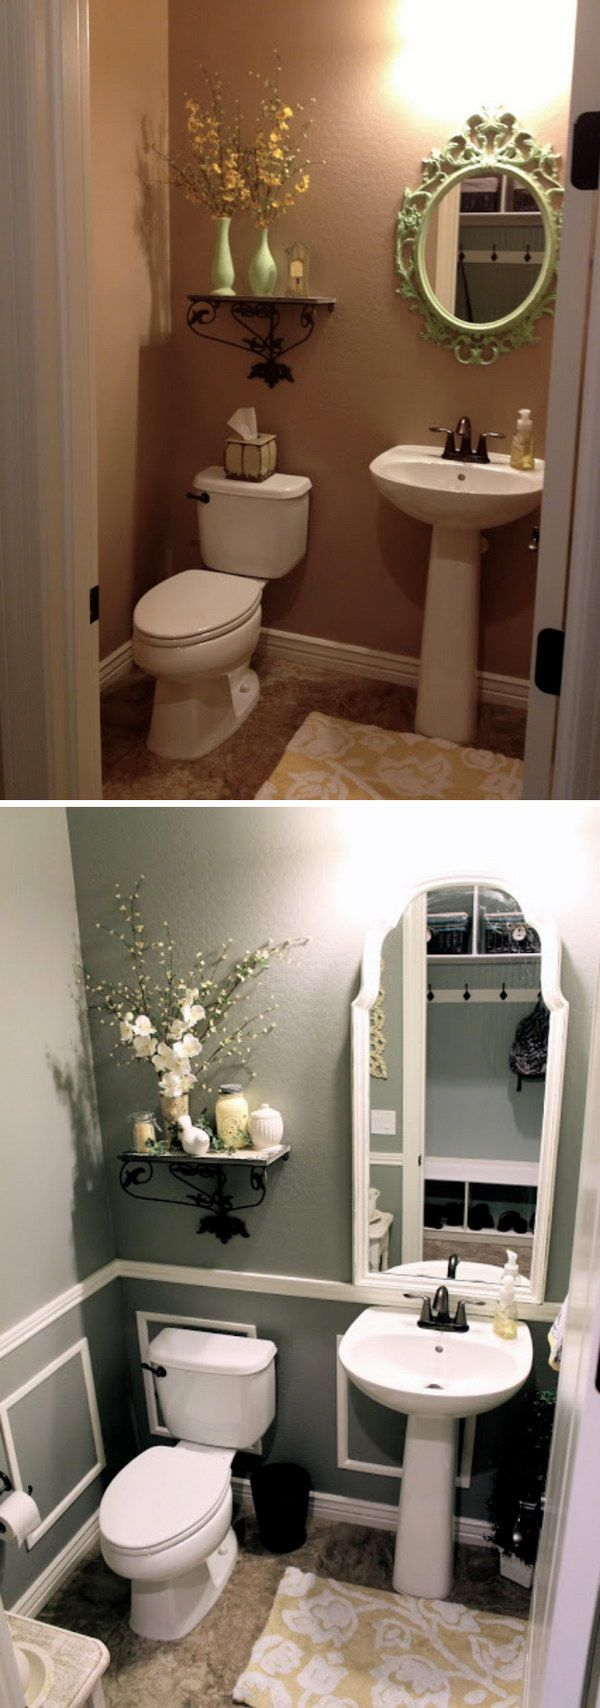 Yellow tile bathroom makeover - Before And After 20 Awesome Bathroom Makeovers